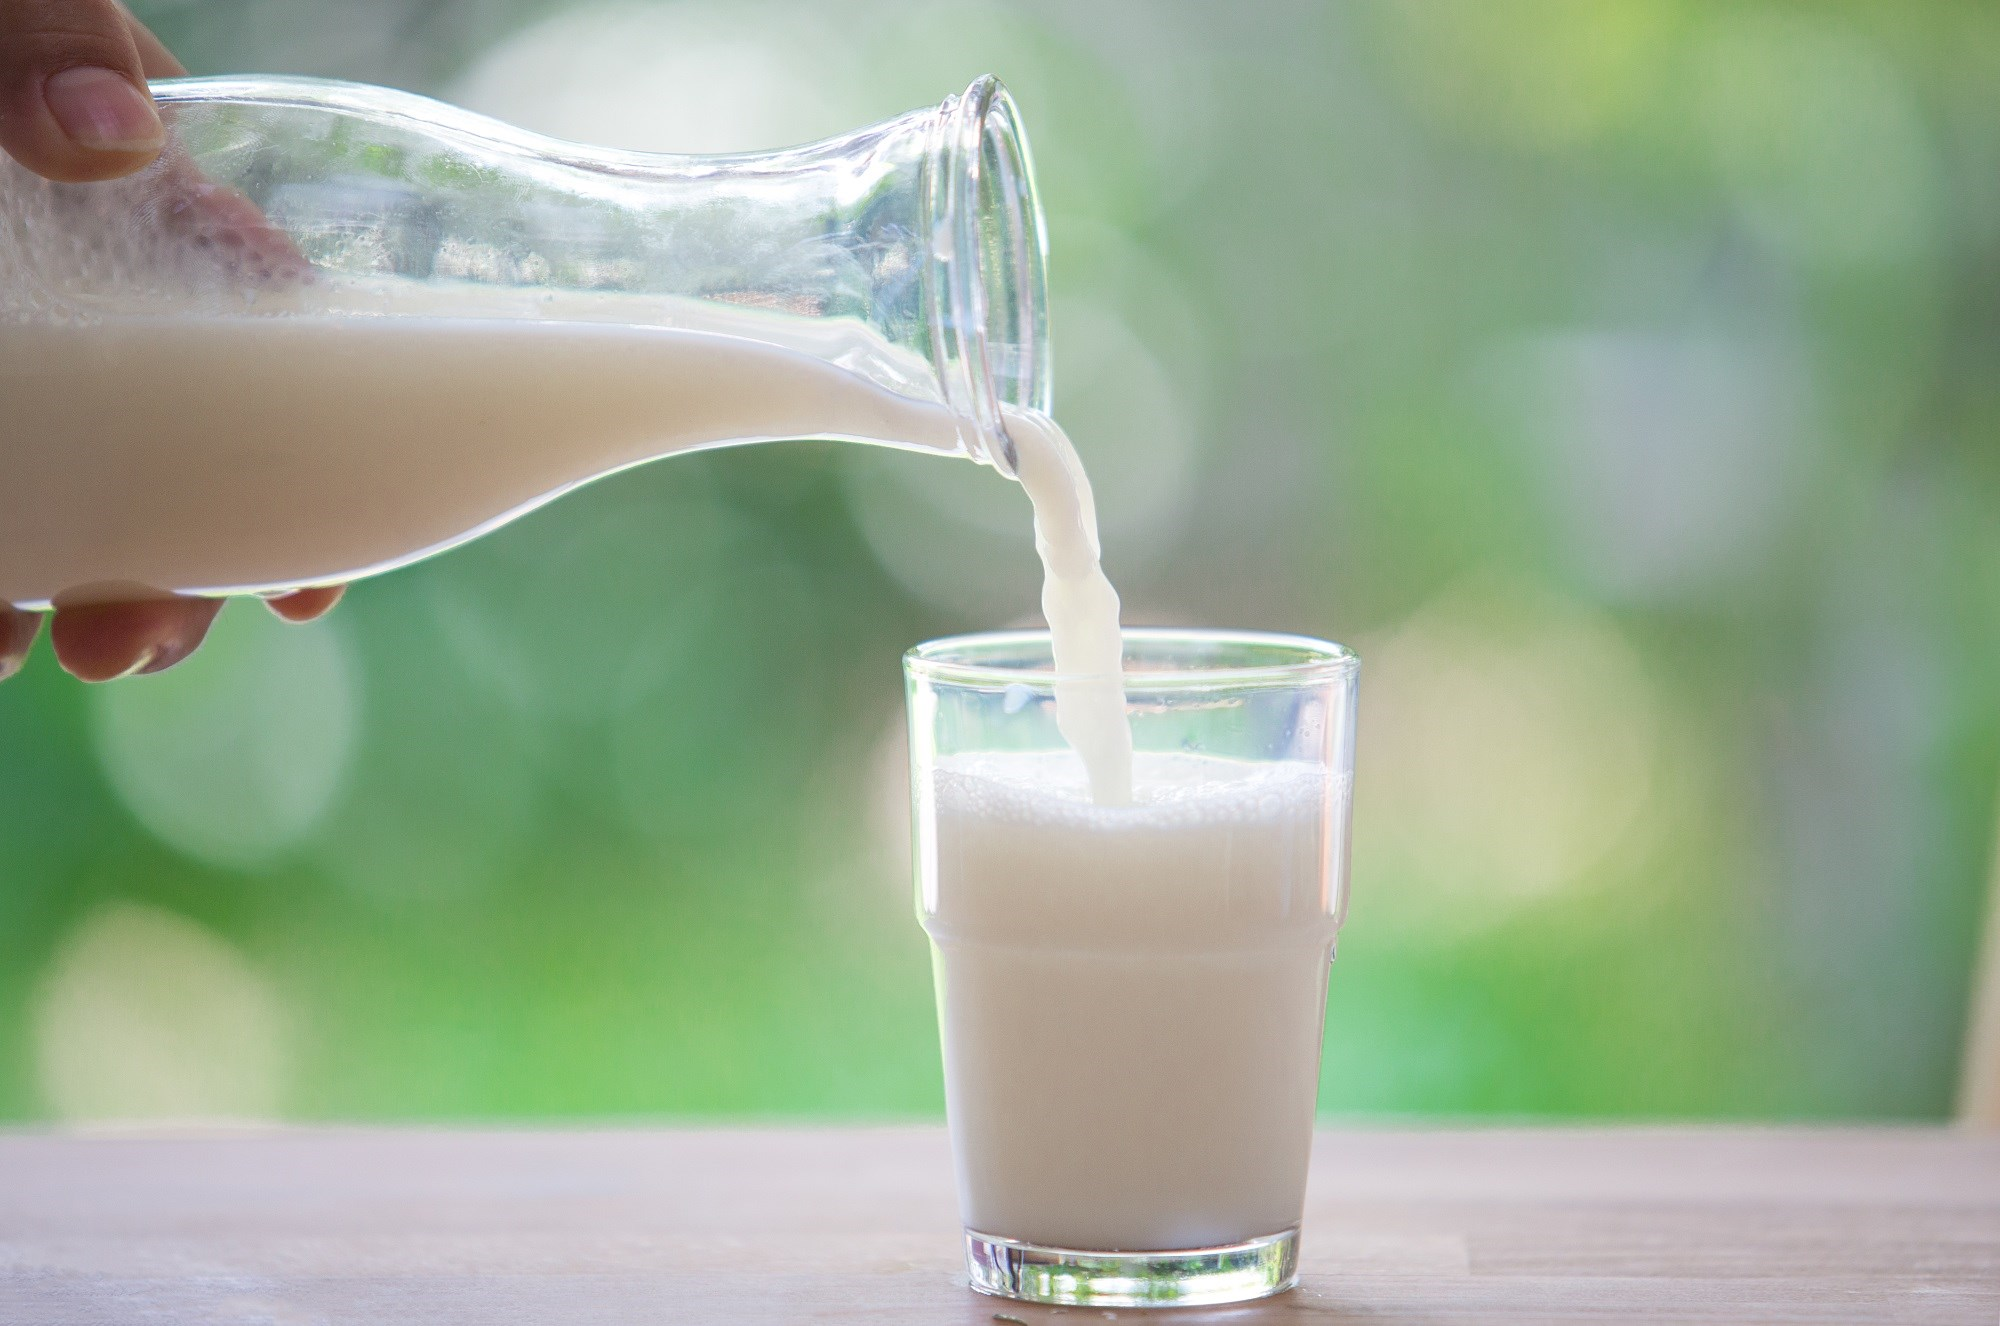 ACAAI: Almost 2% of Children Have Milk Allergy